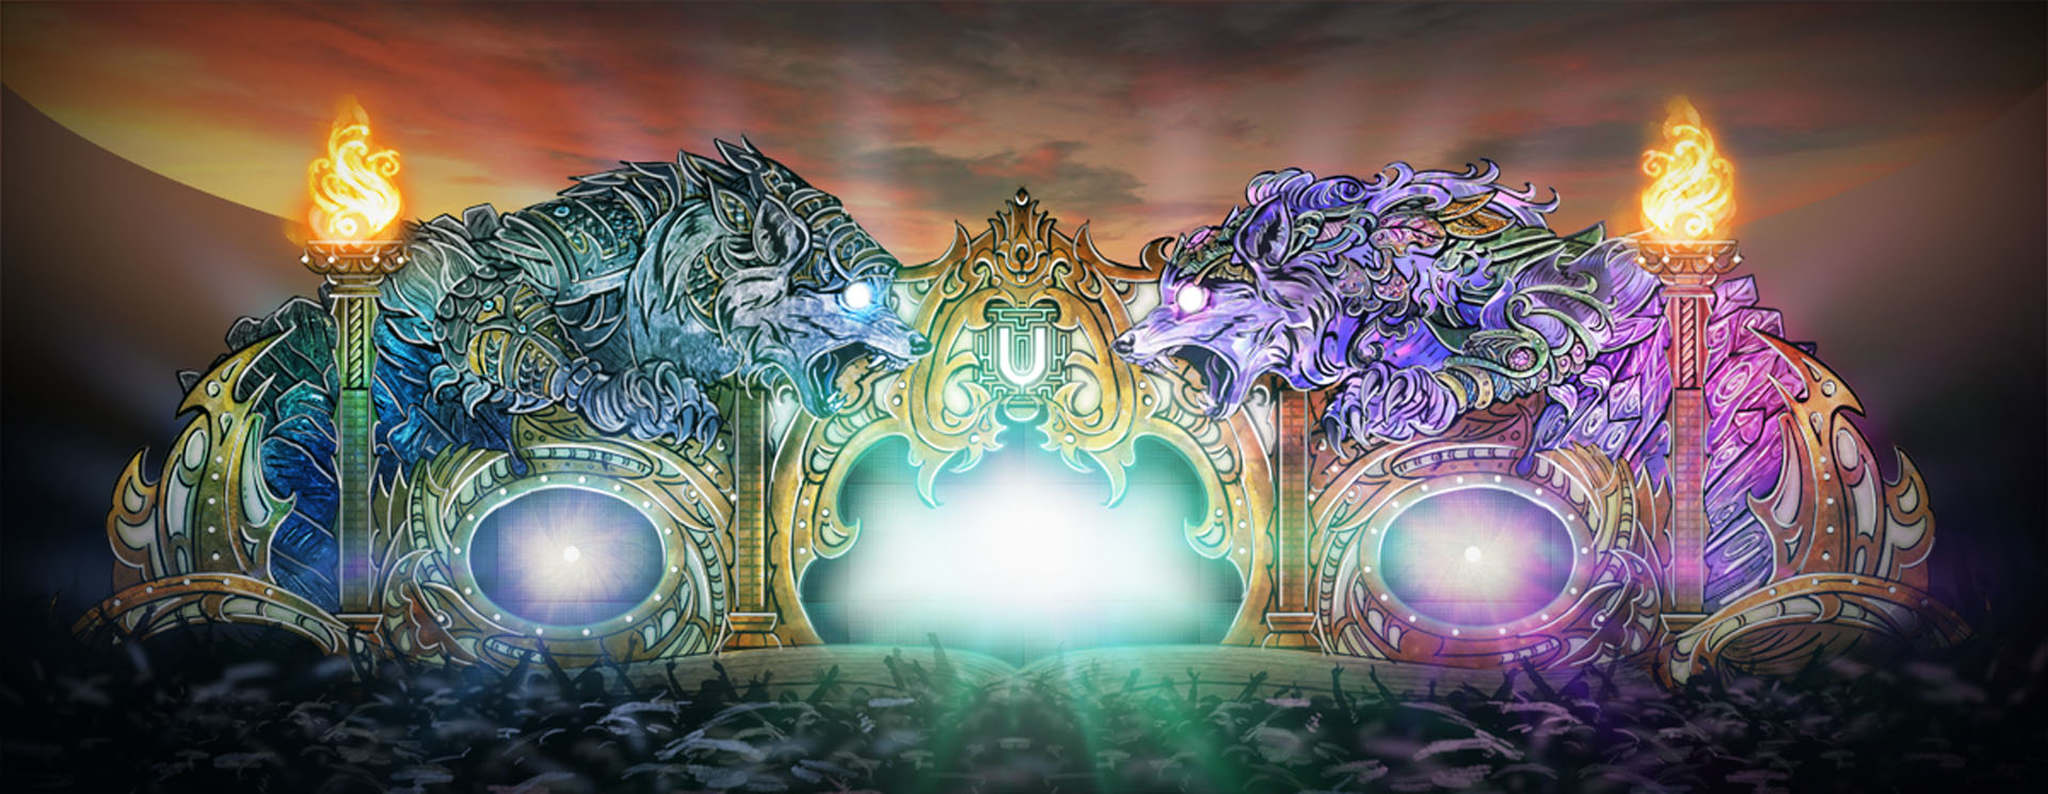 Artist impression of the Wolf Spirit stage at the Untold festivial